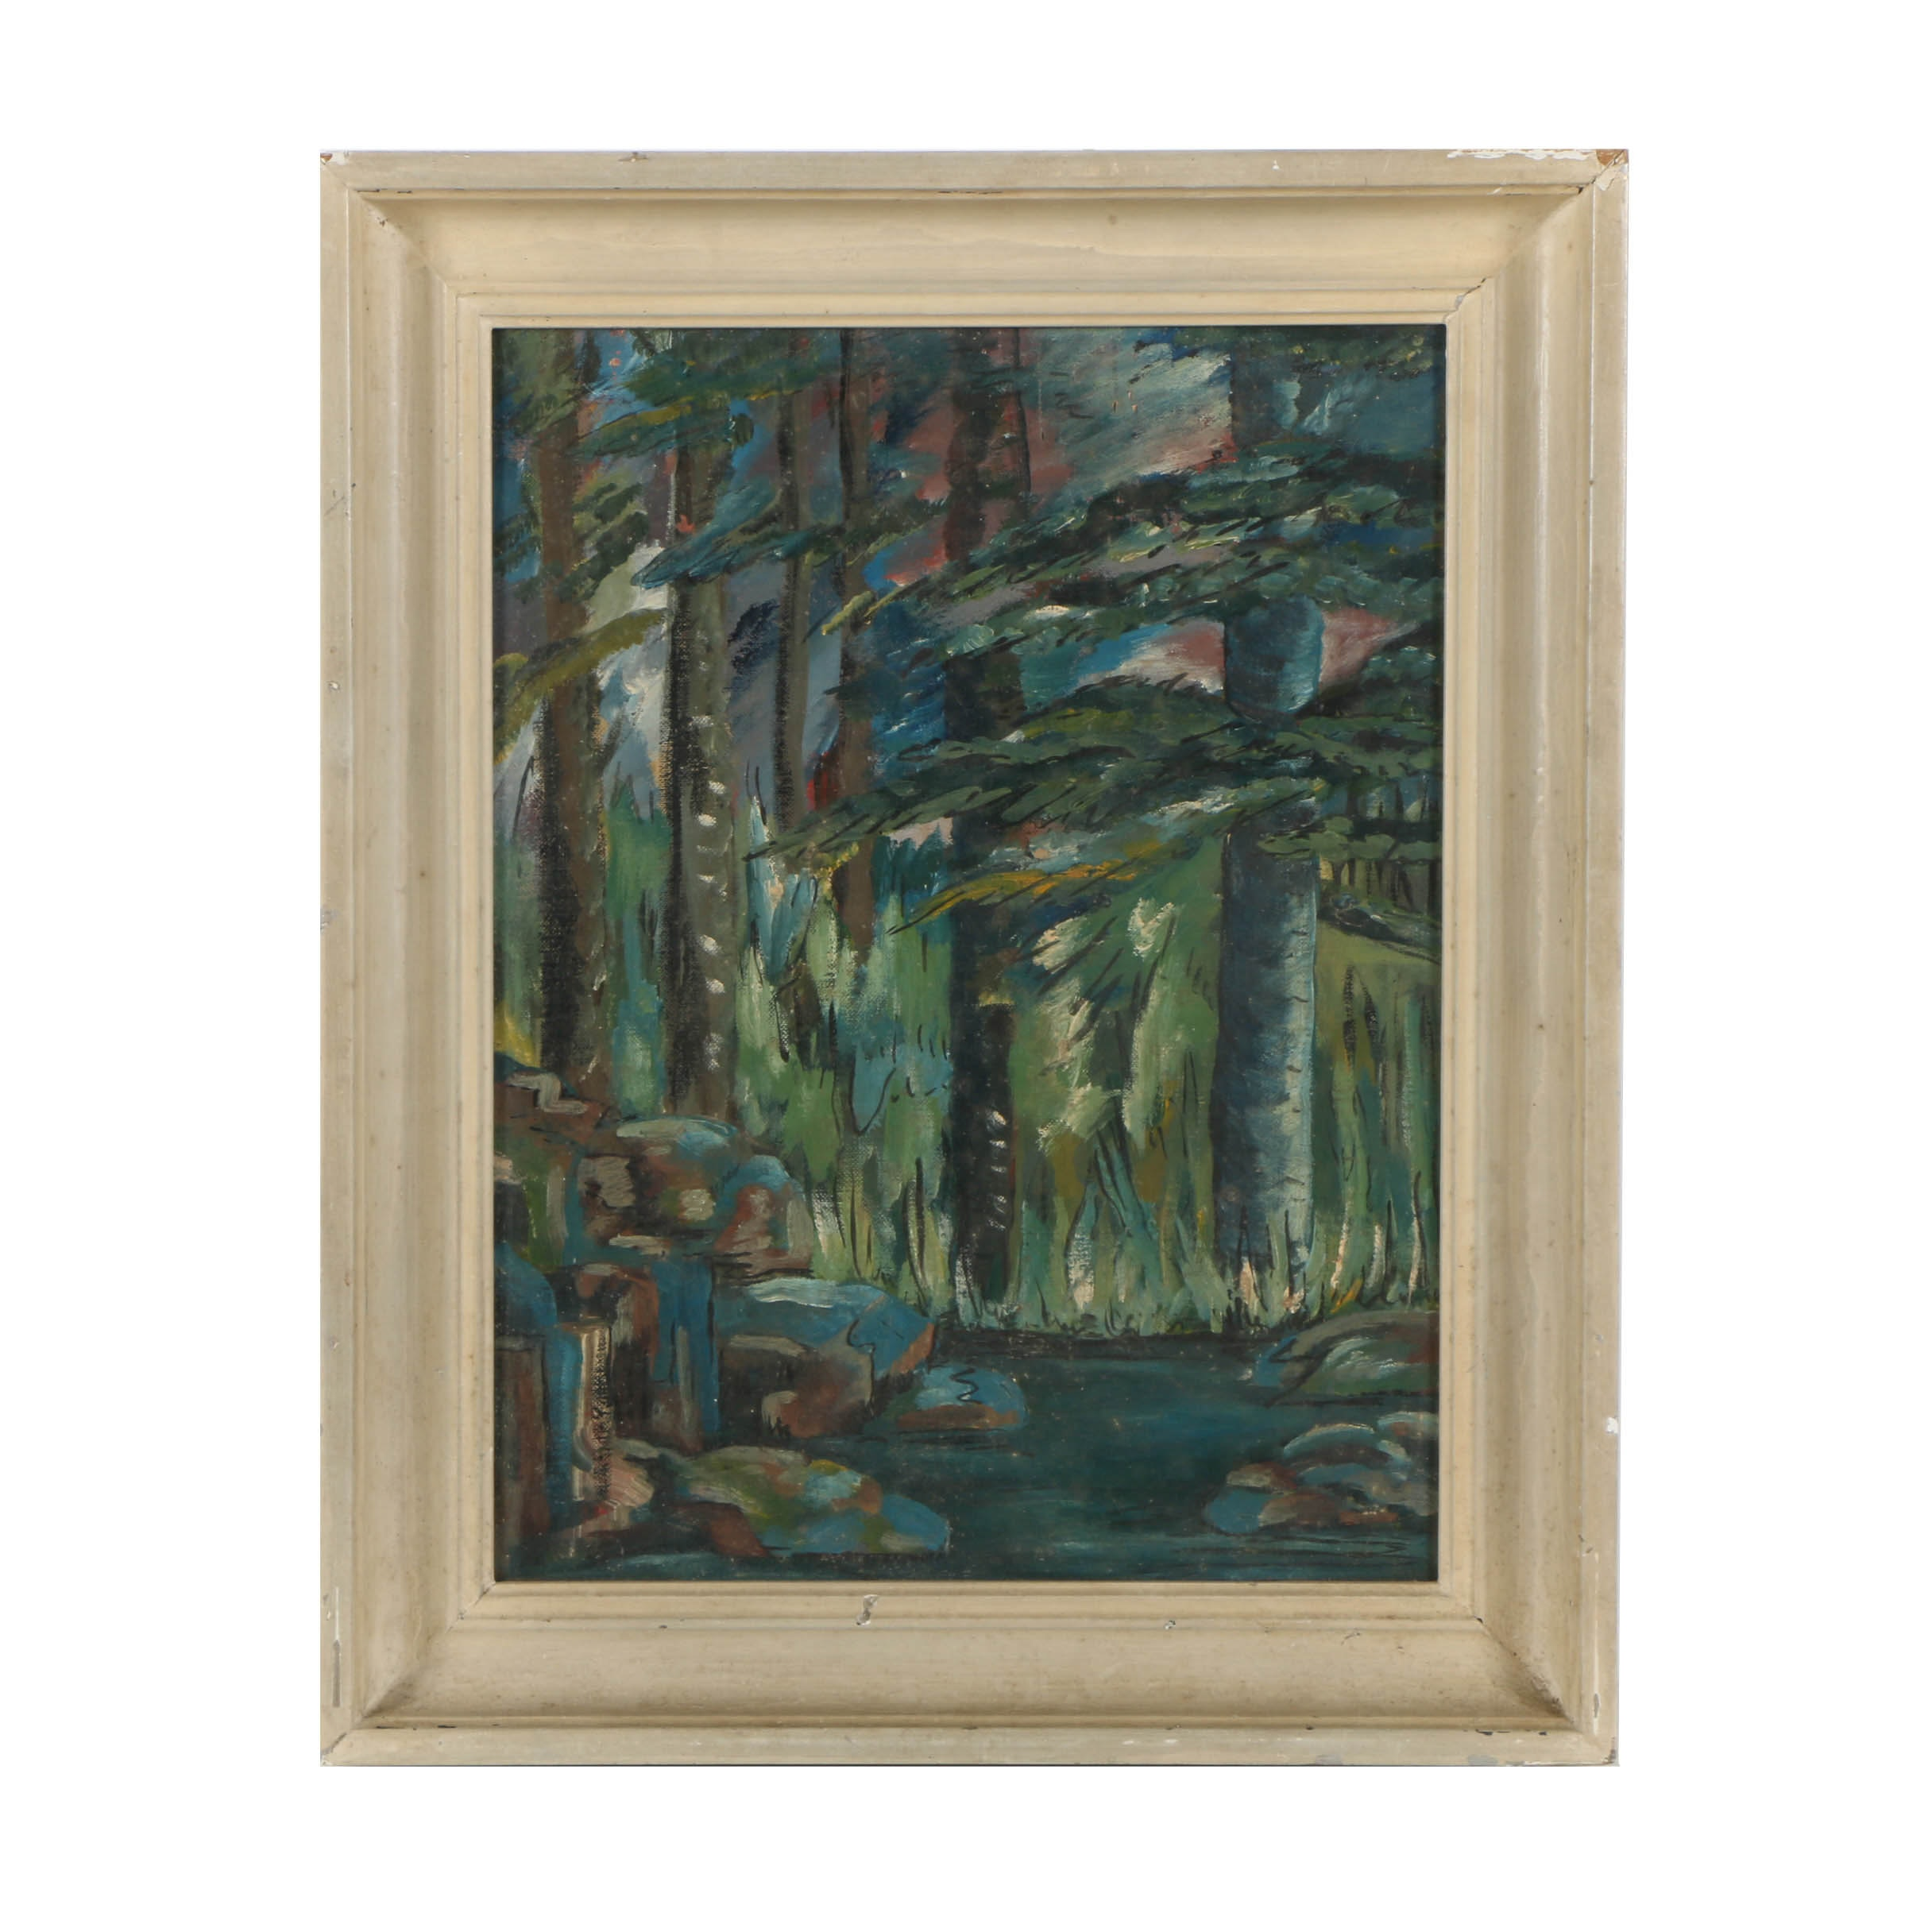 Mid 20th-Century Oil Painting on Canvas Board of Abstract Woodland Landscape